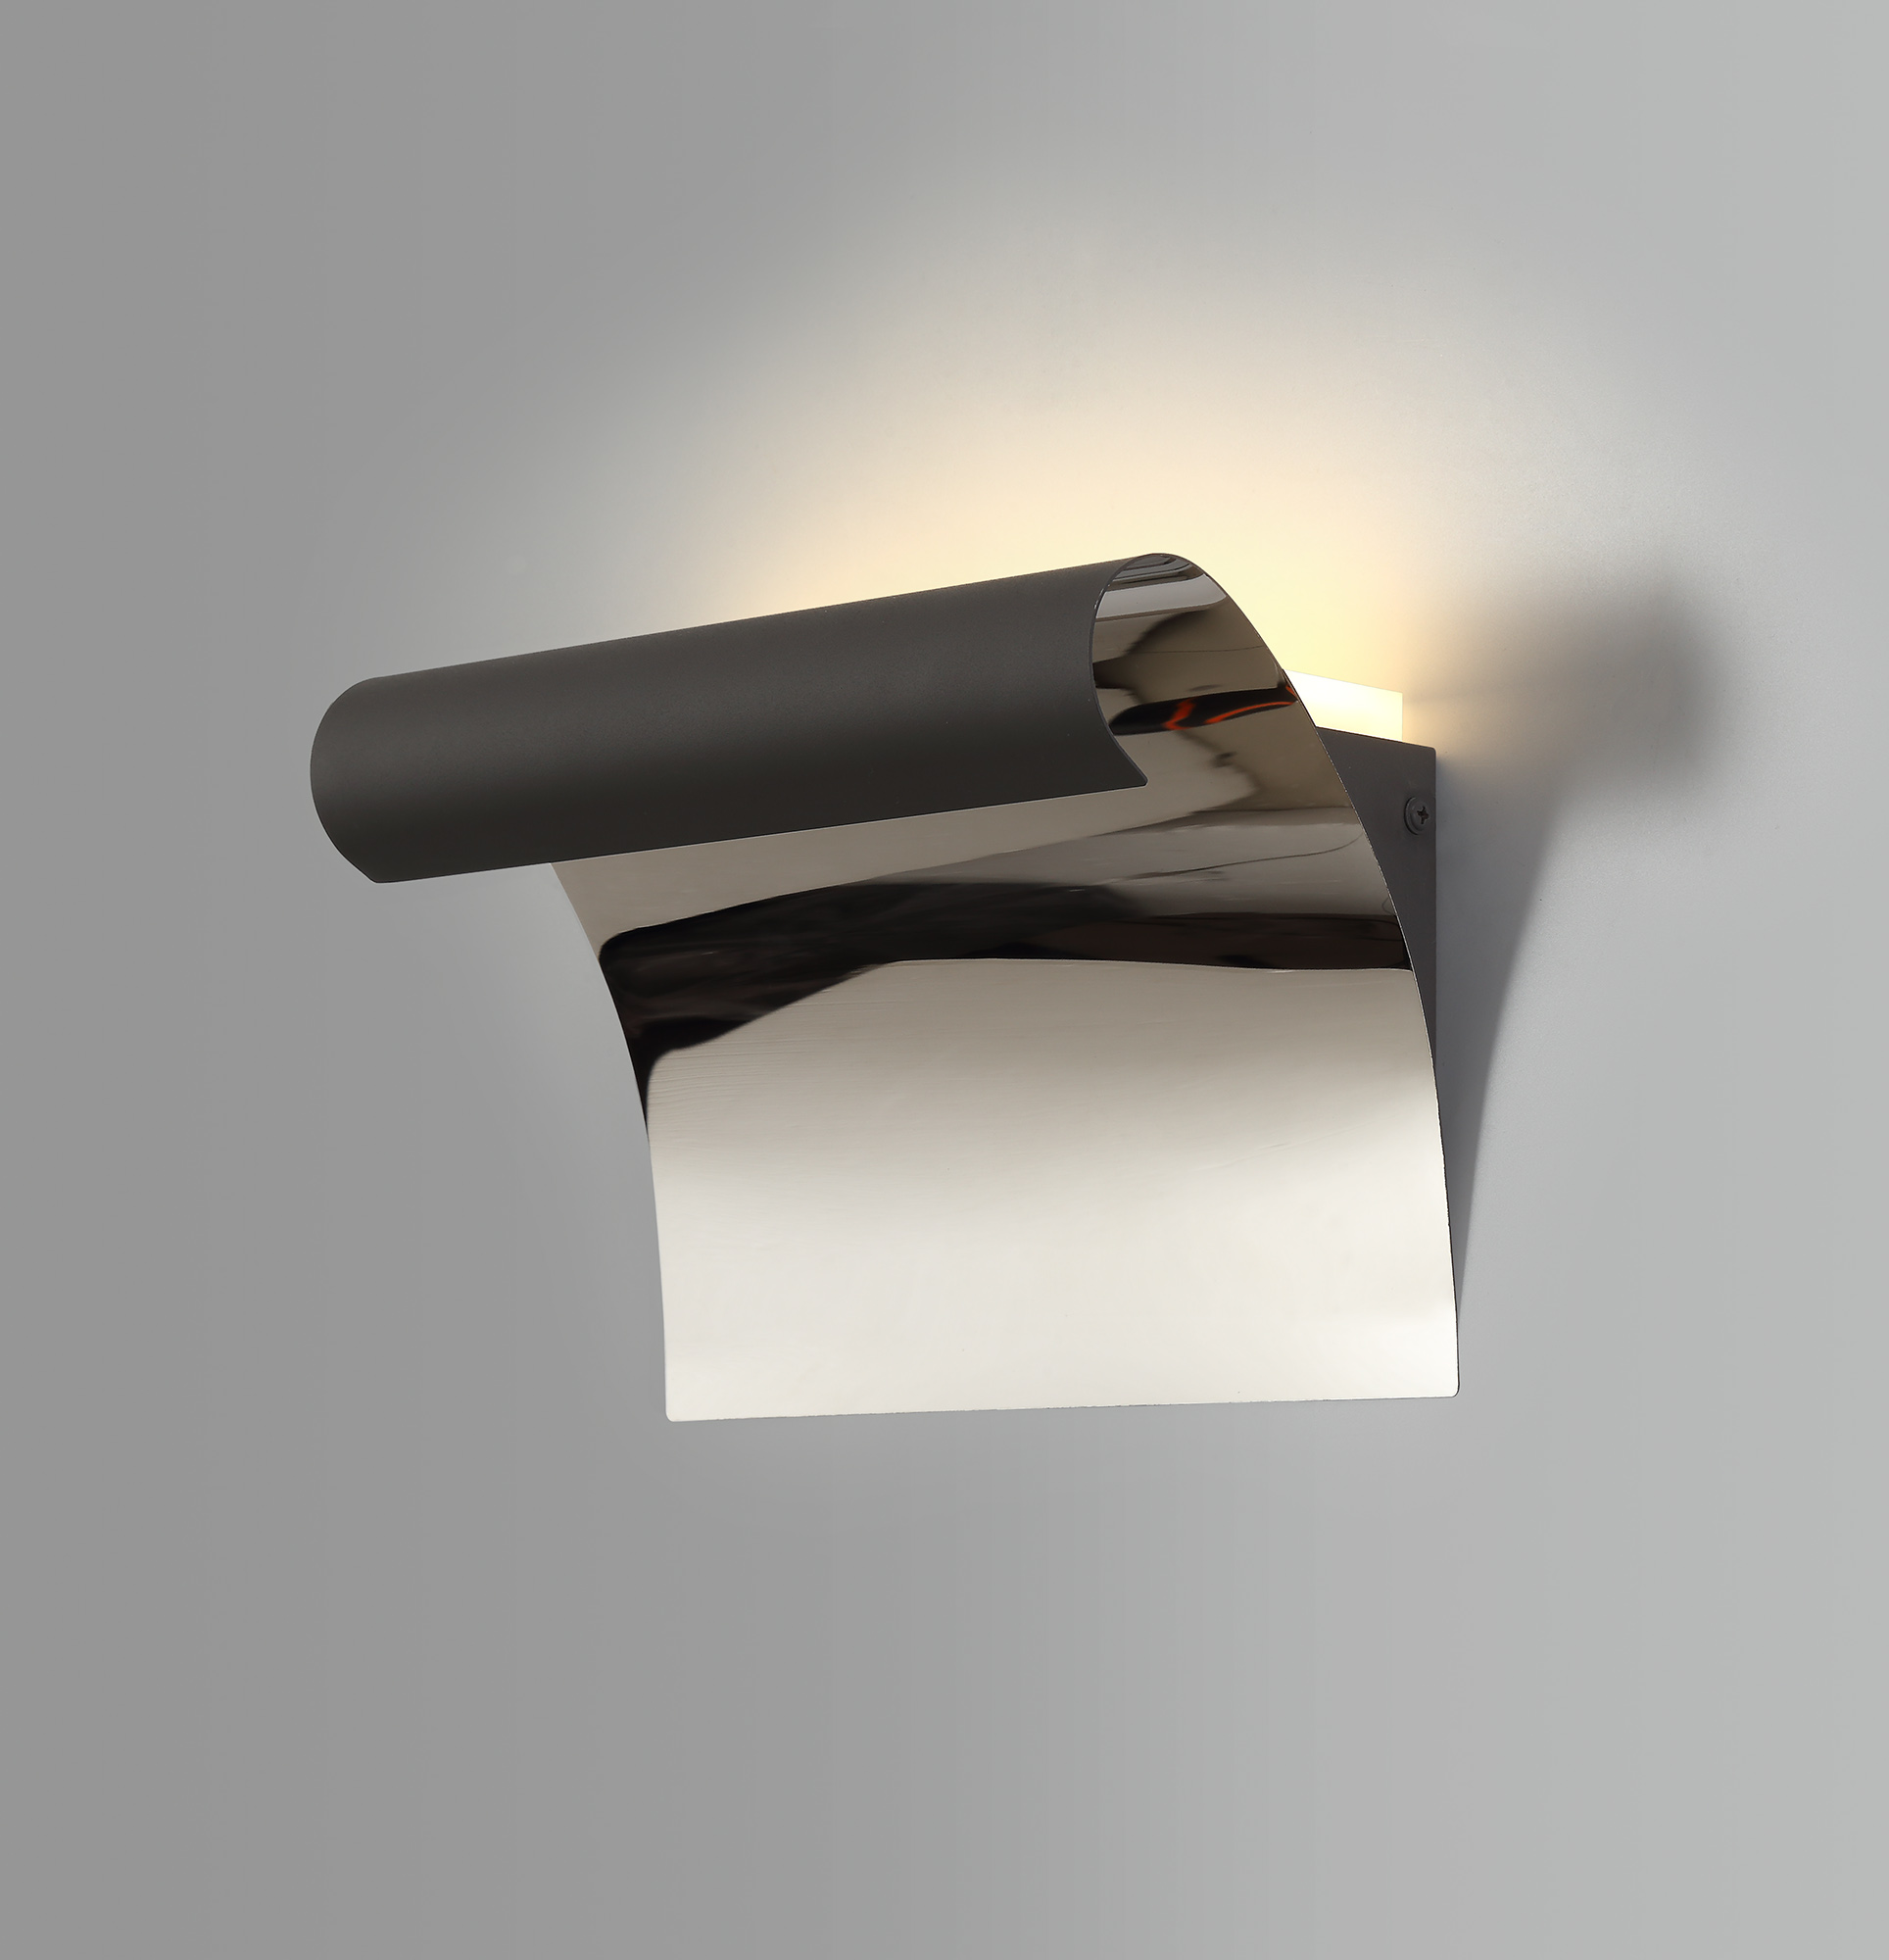 Wall Lamp, 1 x 12W LED, 3000K, 840lm, 3yrs Warranty